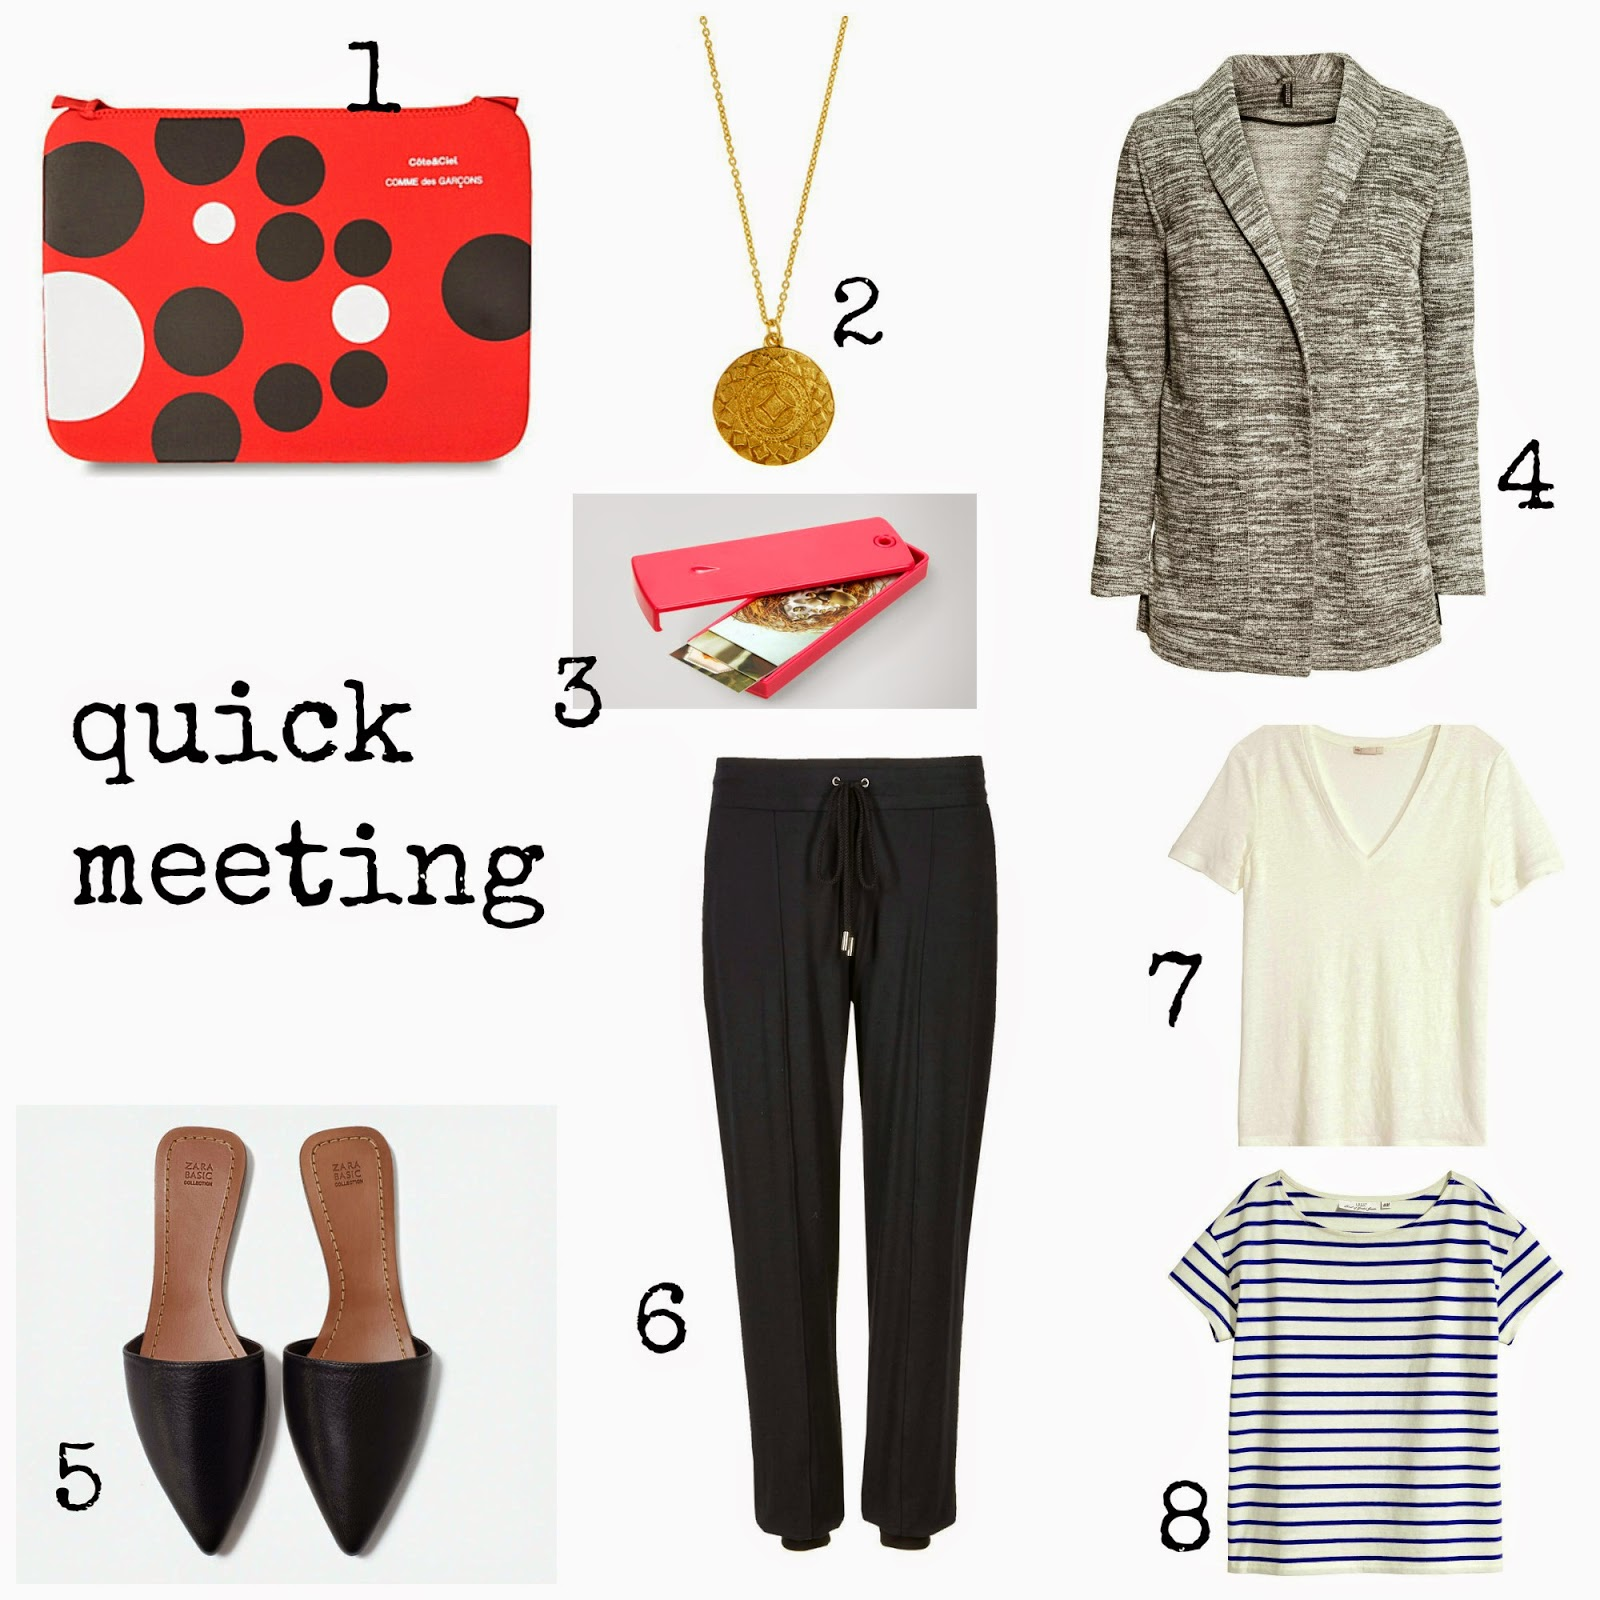 mamasVIB | V. I. BABYMAMAS: Working from home - 5 Stylish looks that mean Business | working from home clothes |  z for accessorise | monsoon | z | jewellery  coin pendent | moo | oo business cards | H&M | classic tees  jersey blazer | zara | best of british at marsk and spencer | M&s | Boden | topshop slides | gold sandals | t-shirt dresses | toast | gap | boden shoes | espadrilles | silver pumps | the white company | the white company collective | mug  keith brymer jones | freelance mug | chinti and parker | birkenstocks | H&M | specsavers | geek glasses | tracksuit | sweat shirt | stripe tee  breton top | hello t-shirt| freelance clothes | causal clothes | working from home | desk | stylish looks for work | marks and spcner | anthropoloigie | scunci | headband | cool looks | river island | to do notepad | mamasVIb | stylist | fashion editor | baby mamas | dress like a mu | comfy clothes | style | fashion | blogger | dressing for work | j crew | asos | kate spade | selfridges | topshop